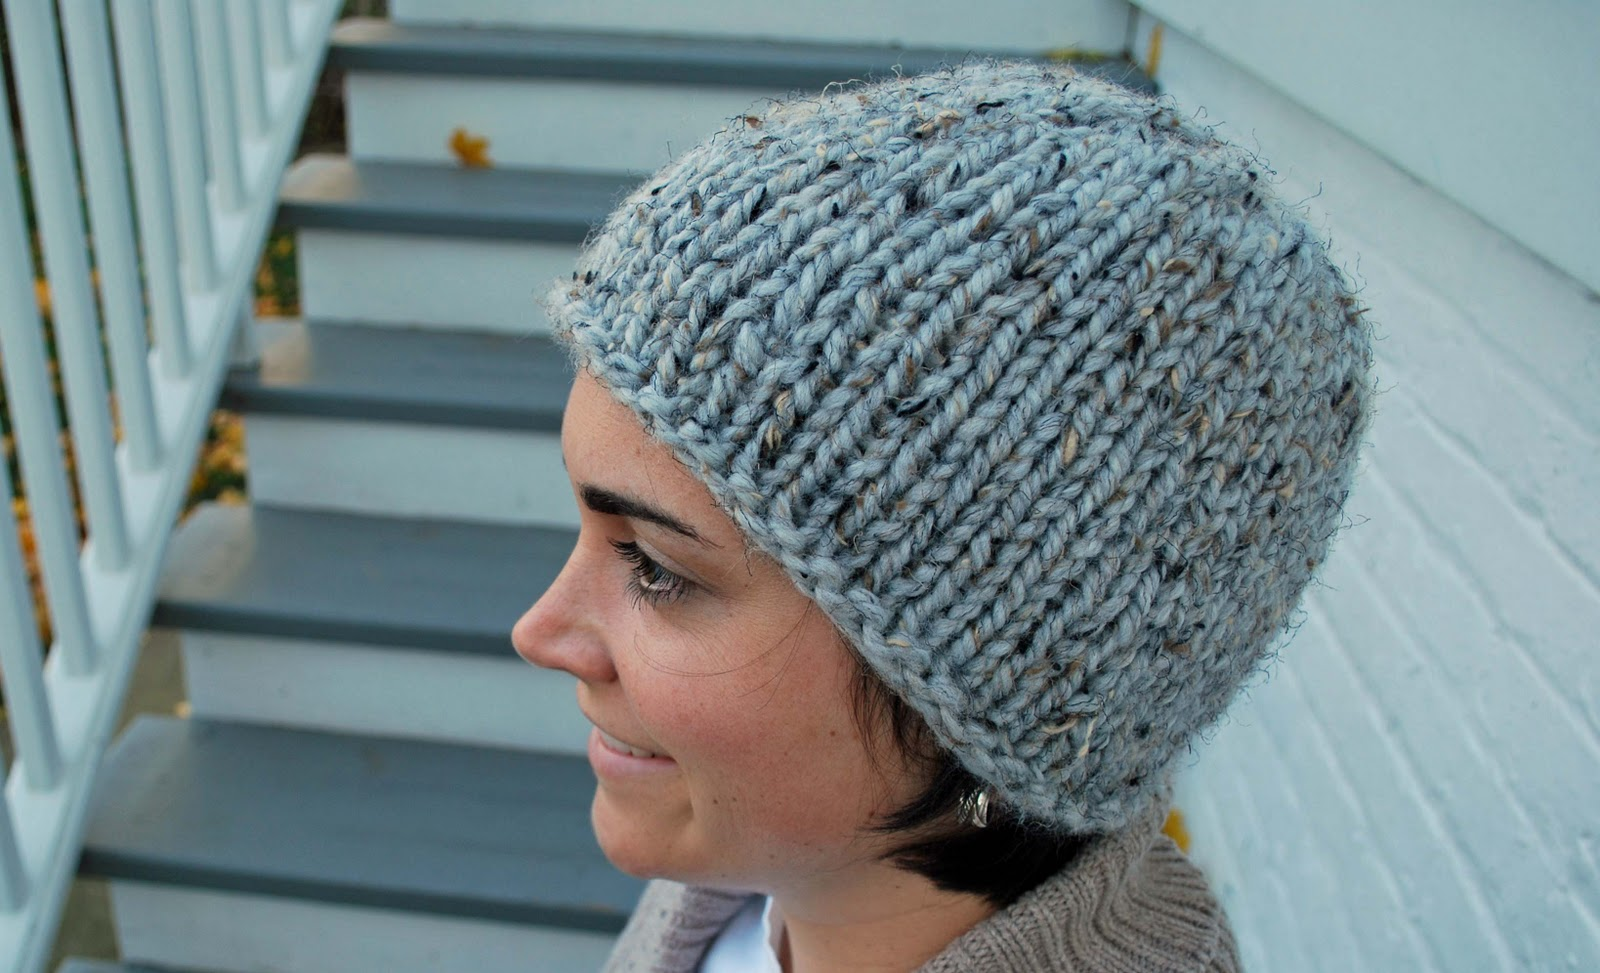 Baby Knitted Hat Patterns On Circular Needles : How To Knit A Hat With Circular Needles